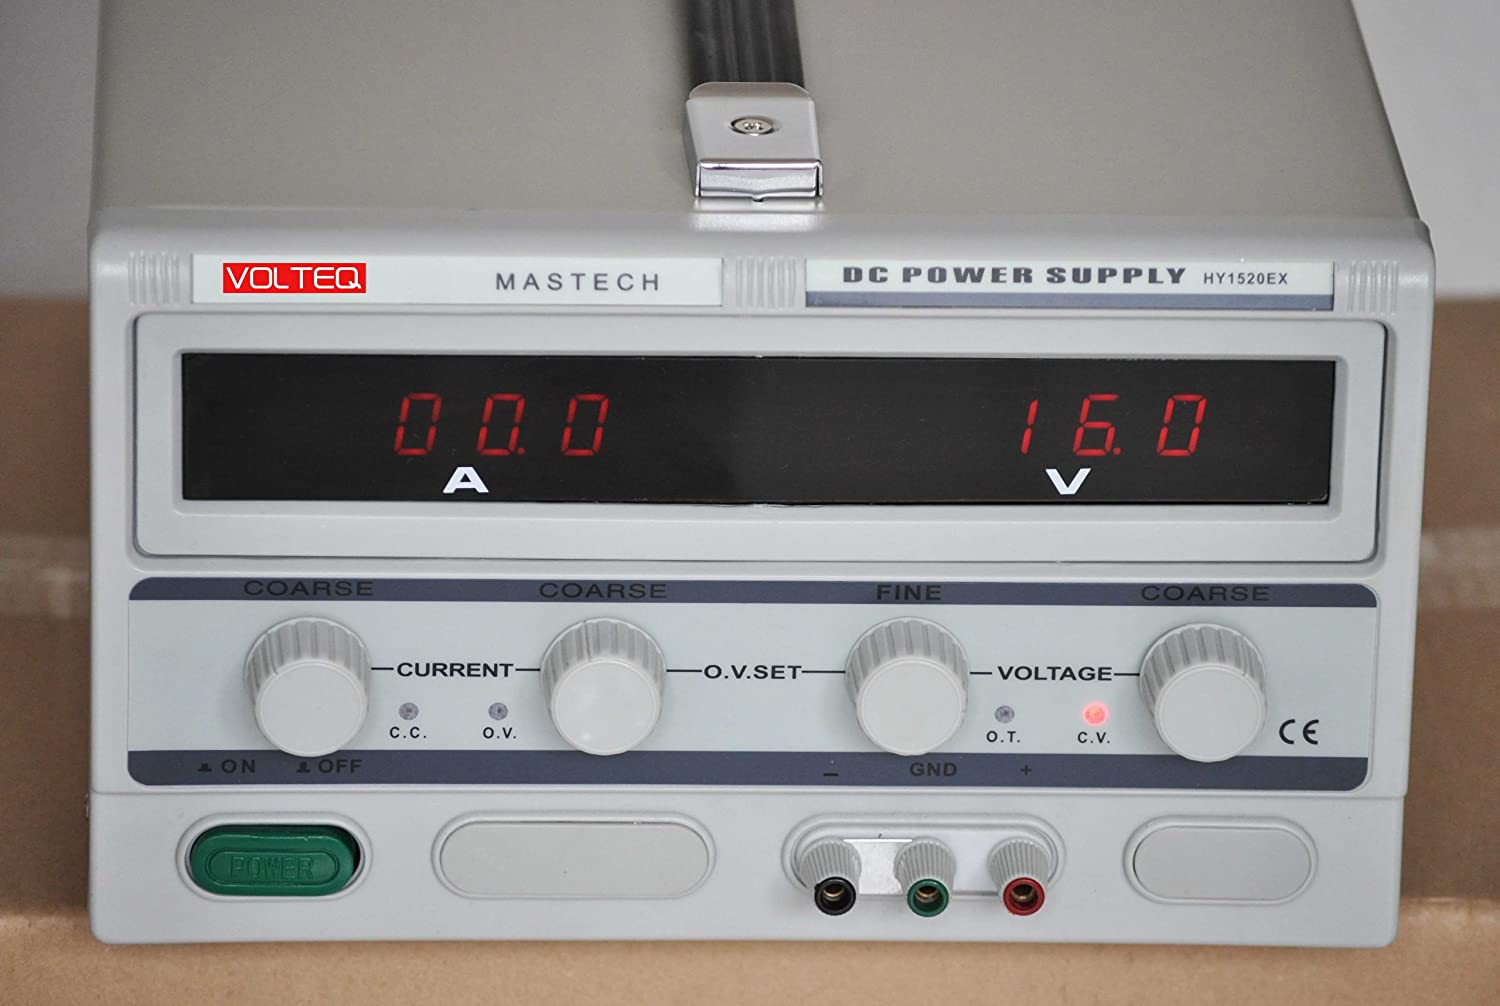 Volteq Variable Dc Power Supply Hy1520ex 15v 20a Over Voltage Adjustable 0 20v At 1a Protection Industrial Scientific